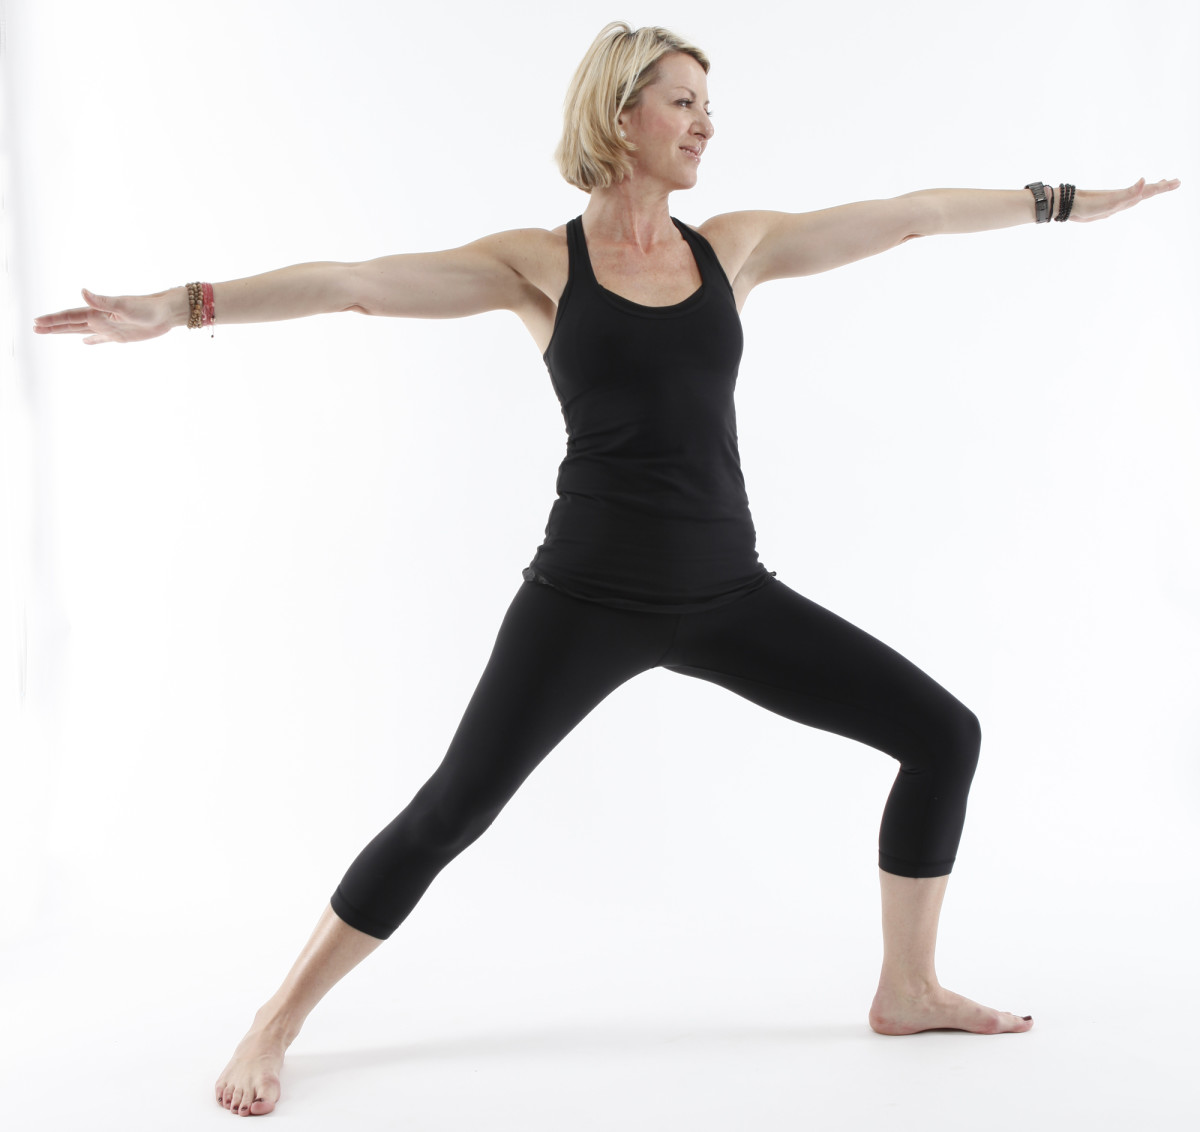 Standing yoga poses include lunges, forward bends, back bends and side-bends and improve balance and concentration.